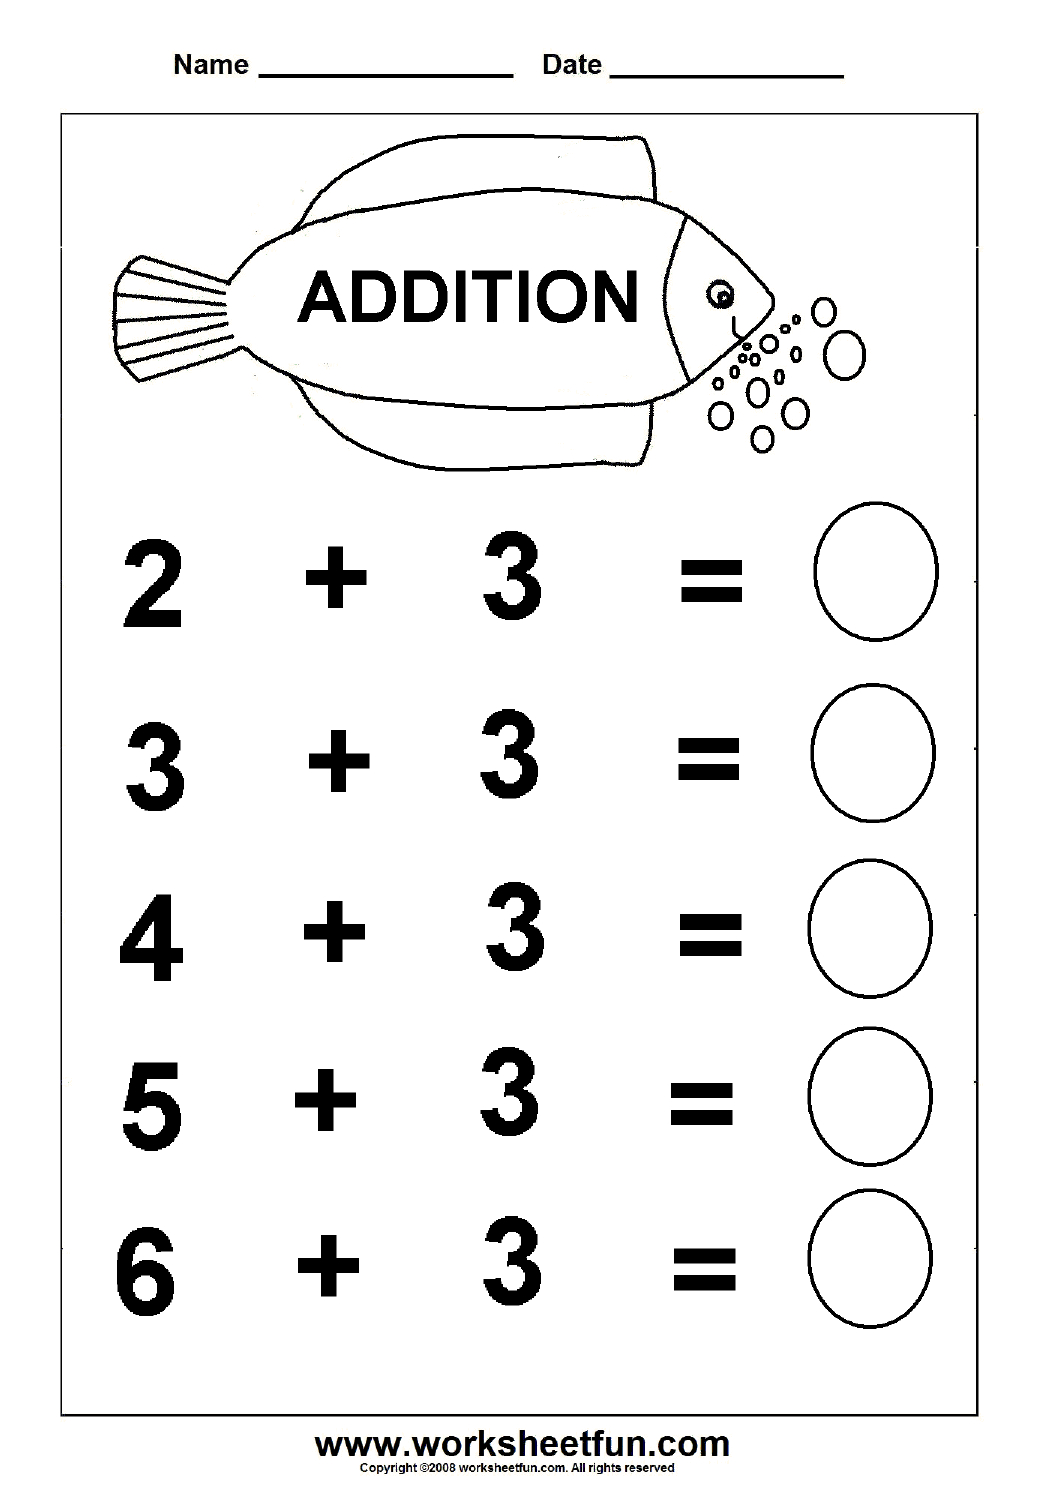 Beginner Addition – 6 Kindergarten Addition Worksheets / Free - Free Printable Sheets For Kindergarten